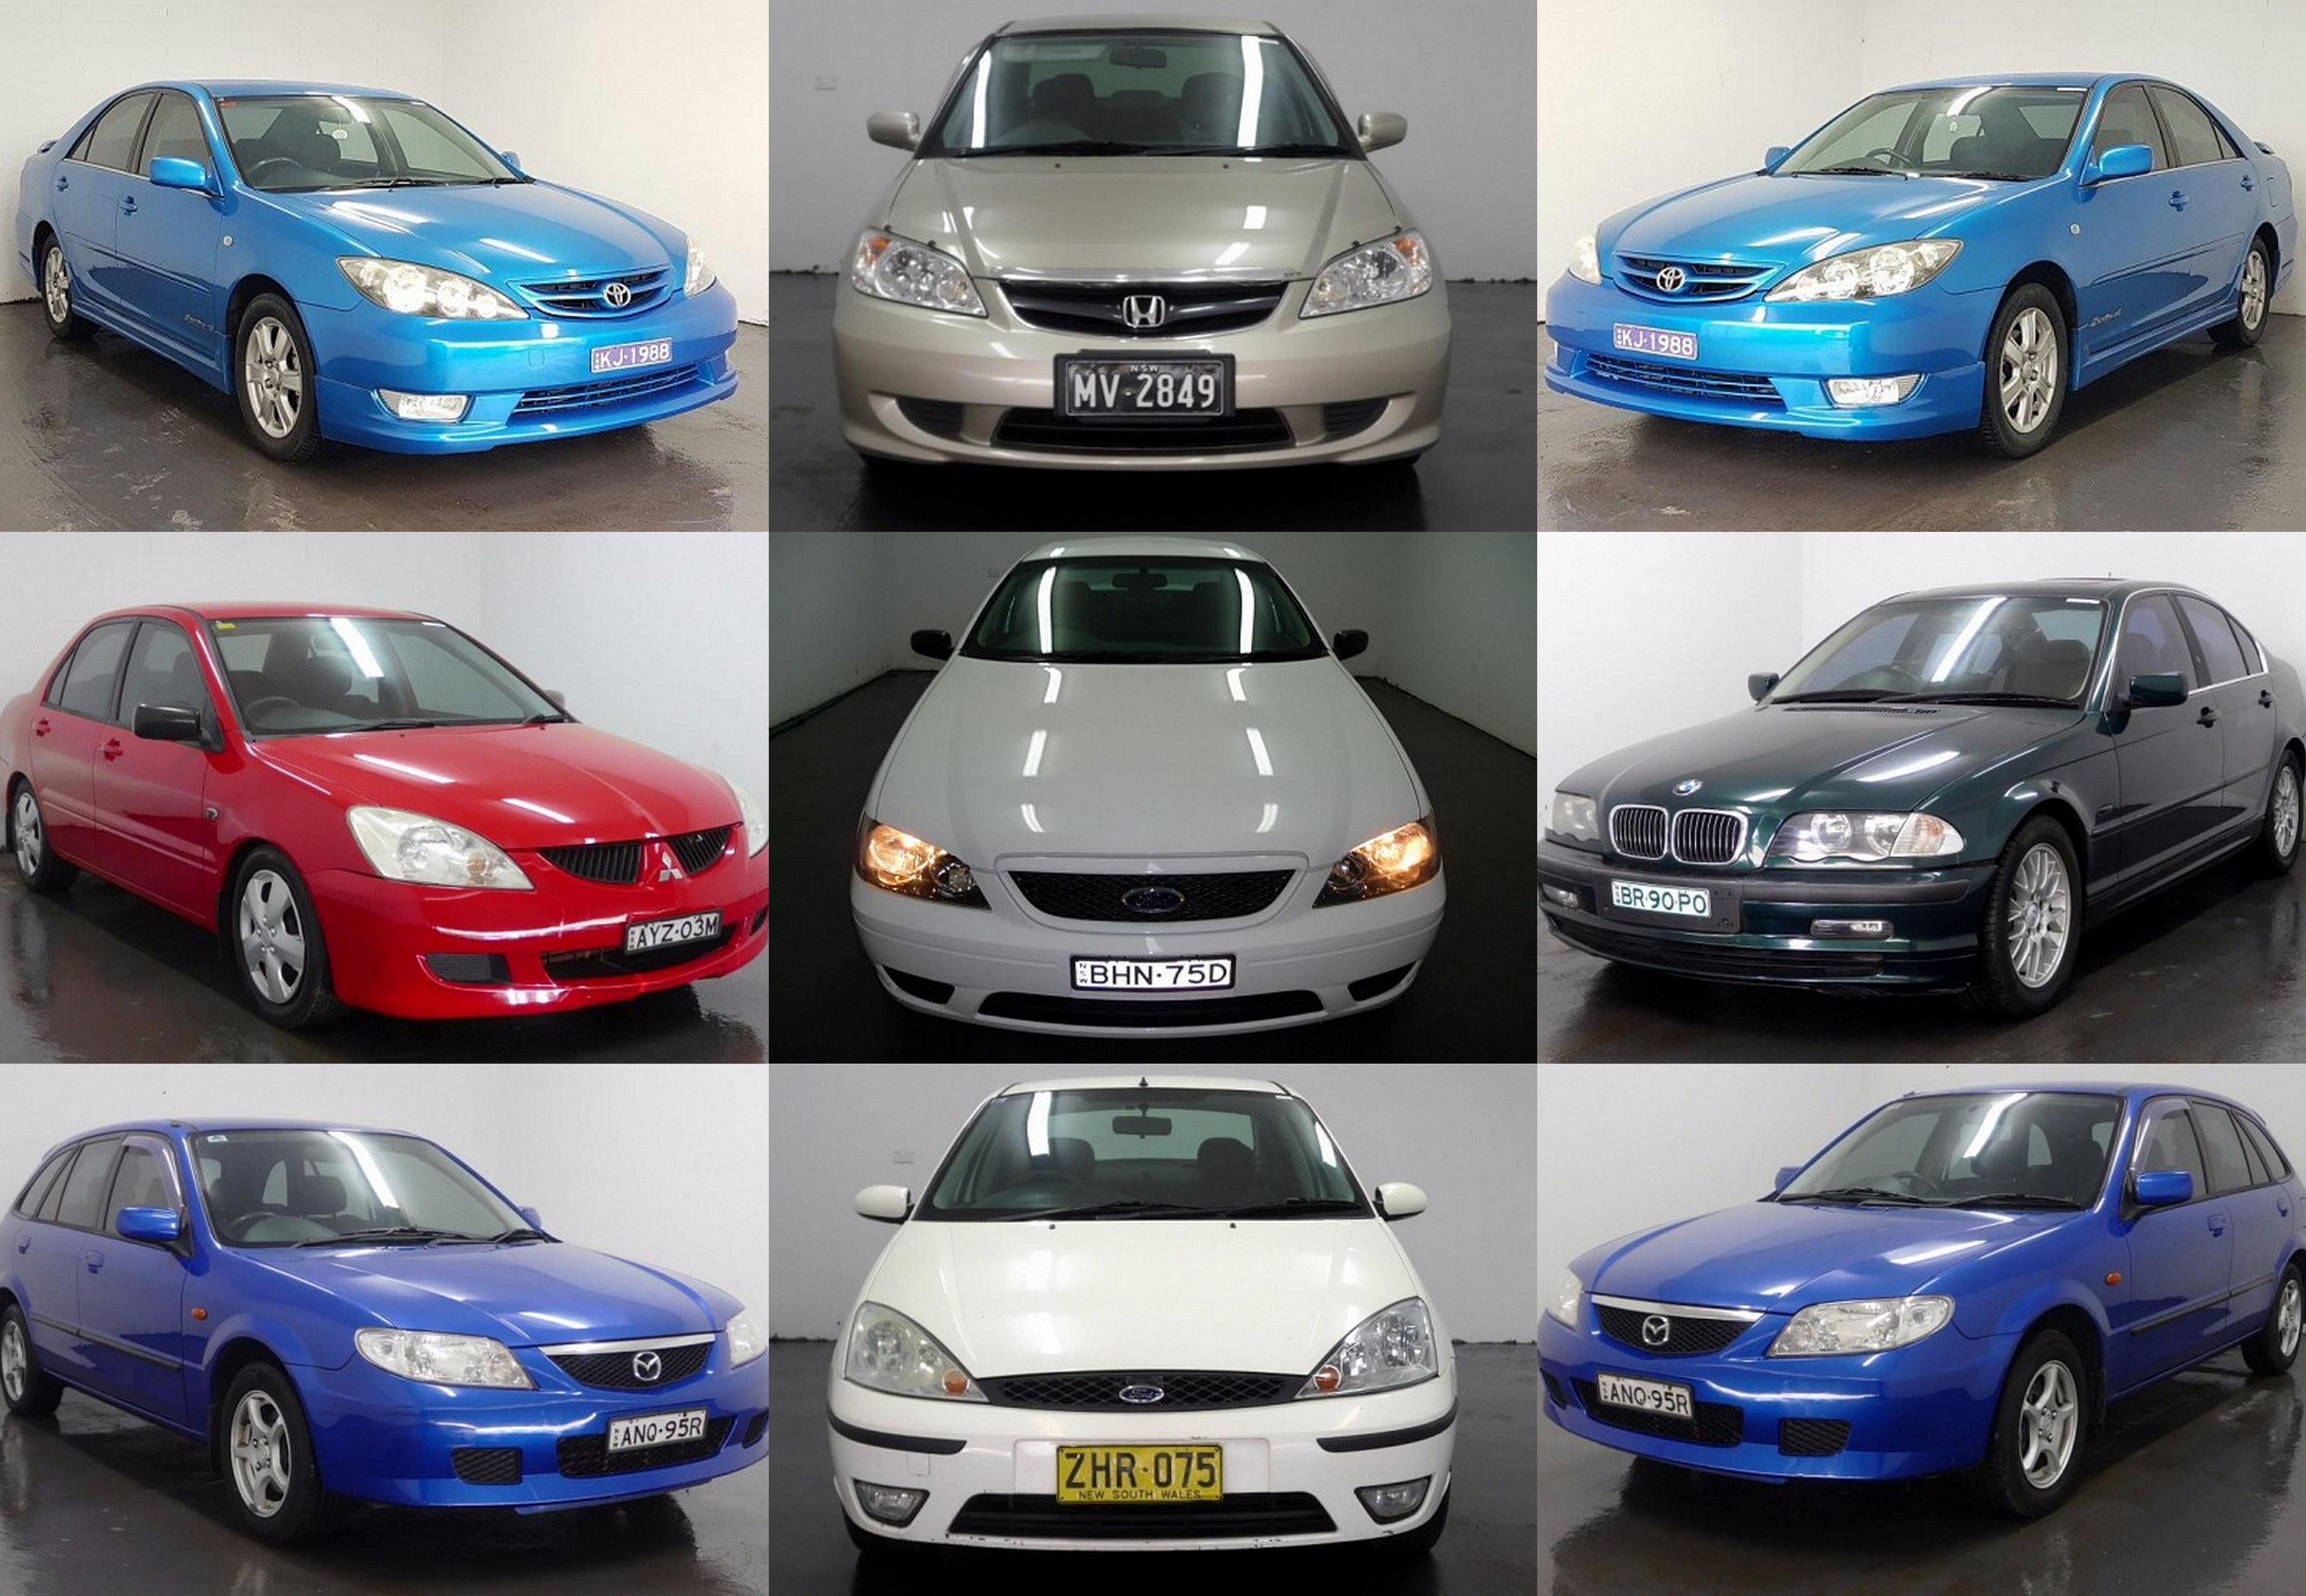 10 top used cars under 6000 all in good running condition